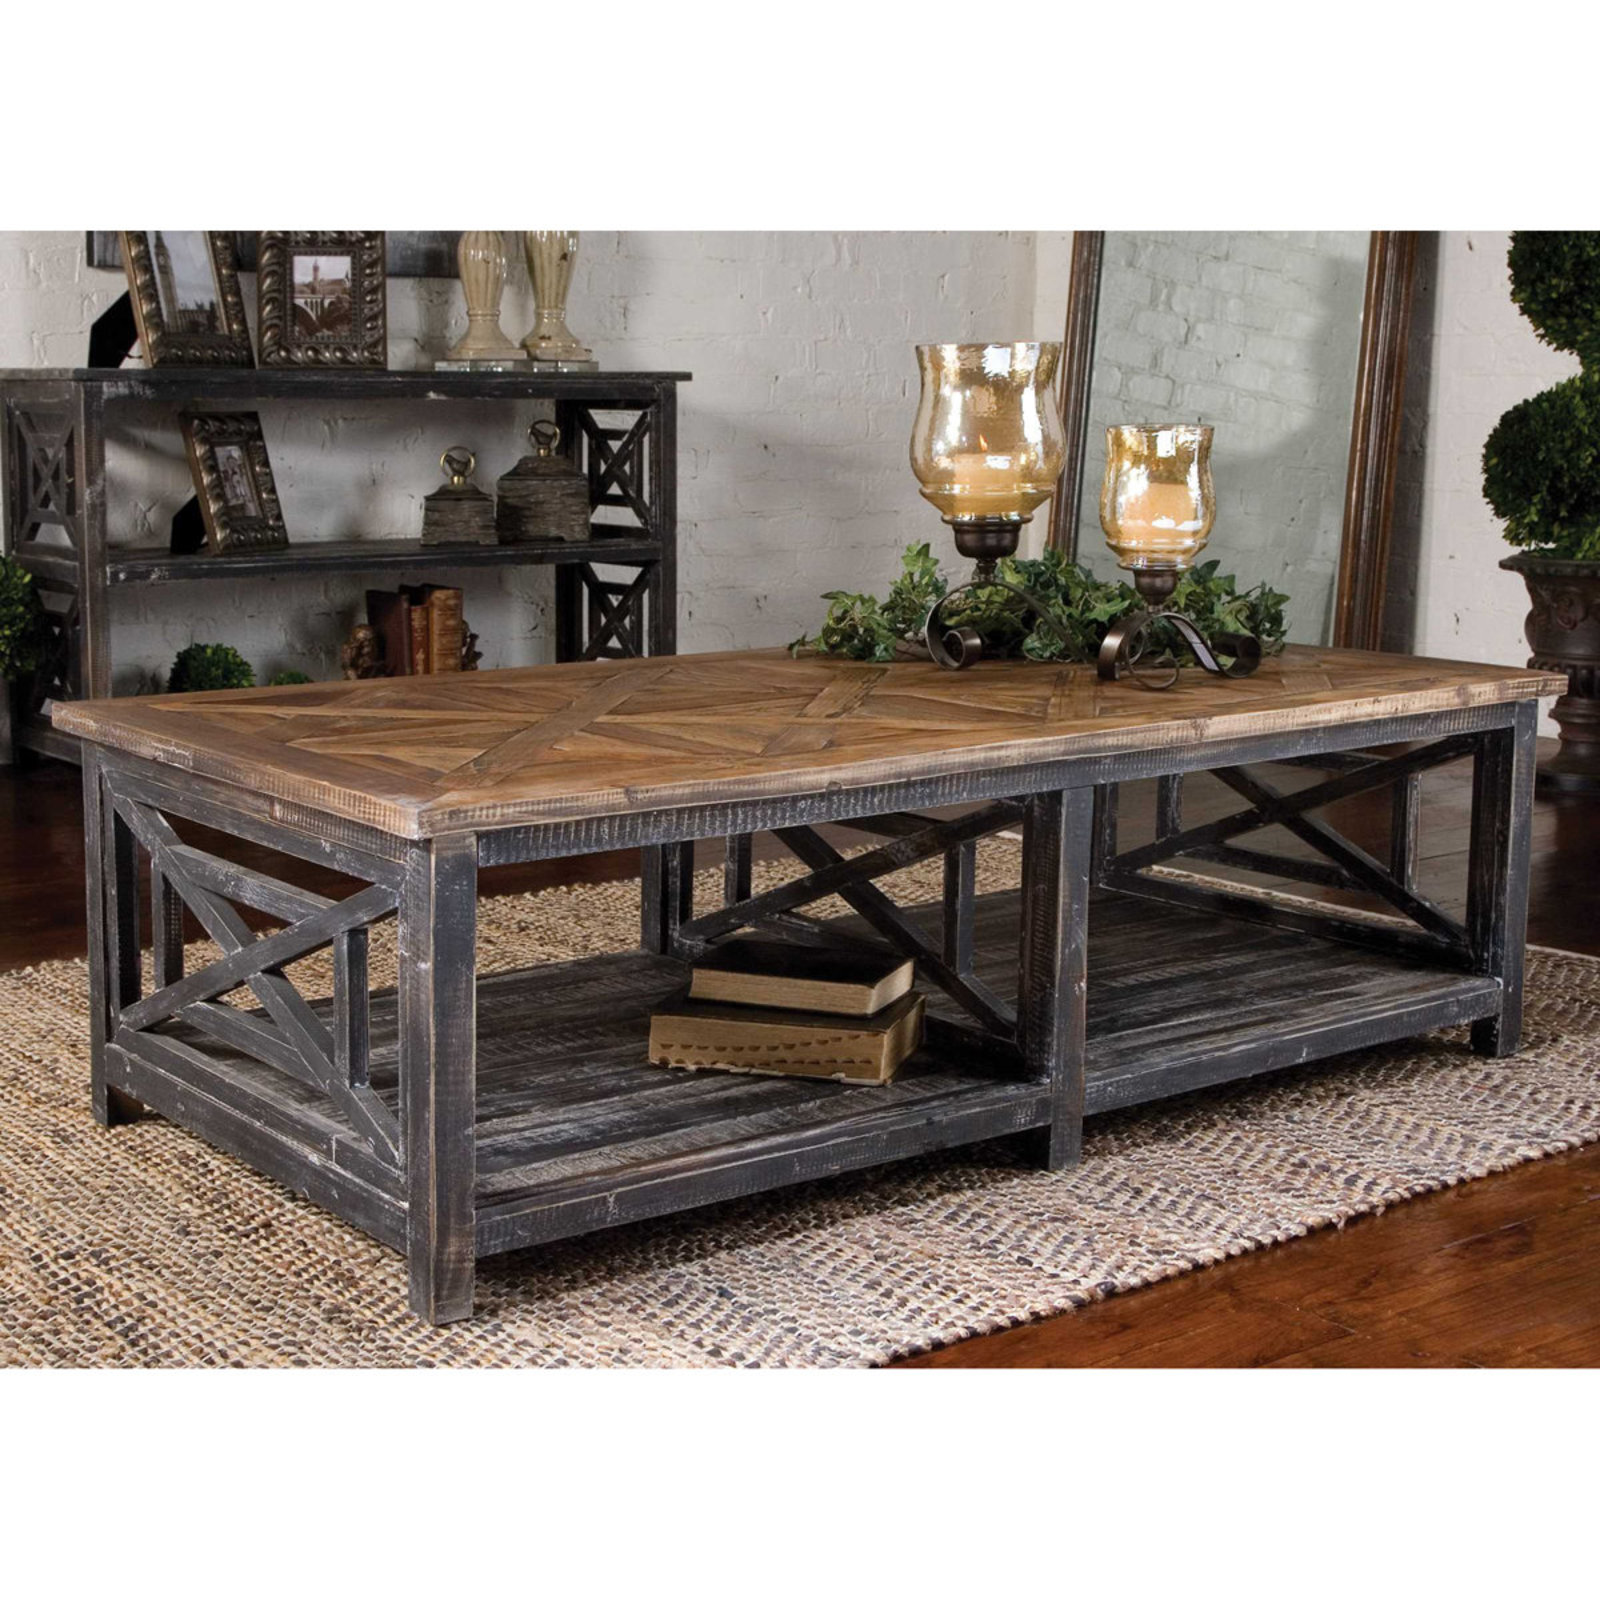 probably perfect awesome reclaimed wood coffee and end tables rustic table shades light distressed black natural with gray glaze grey silver lamps dog cage sizes small